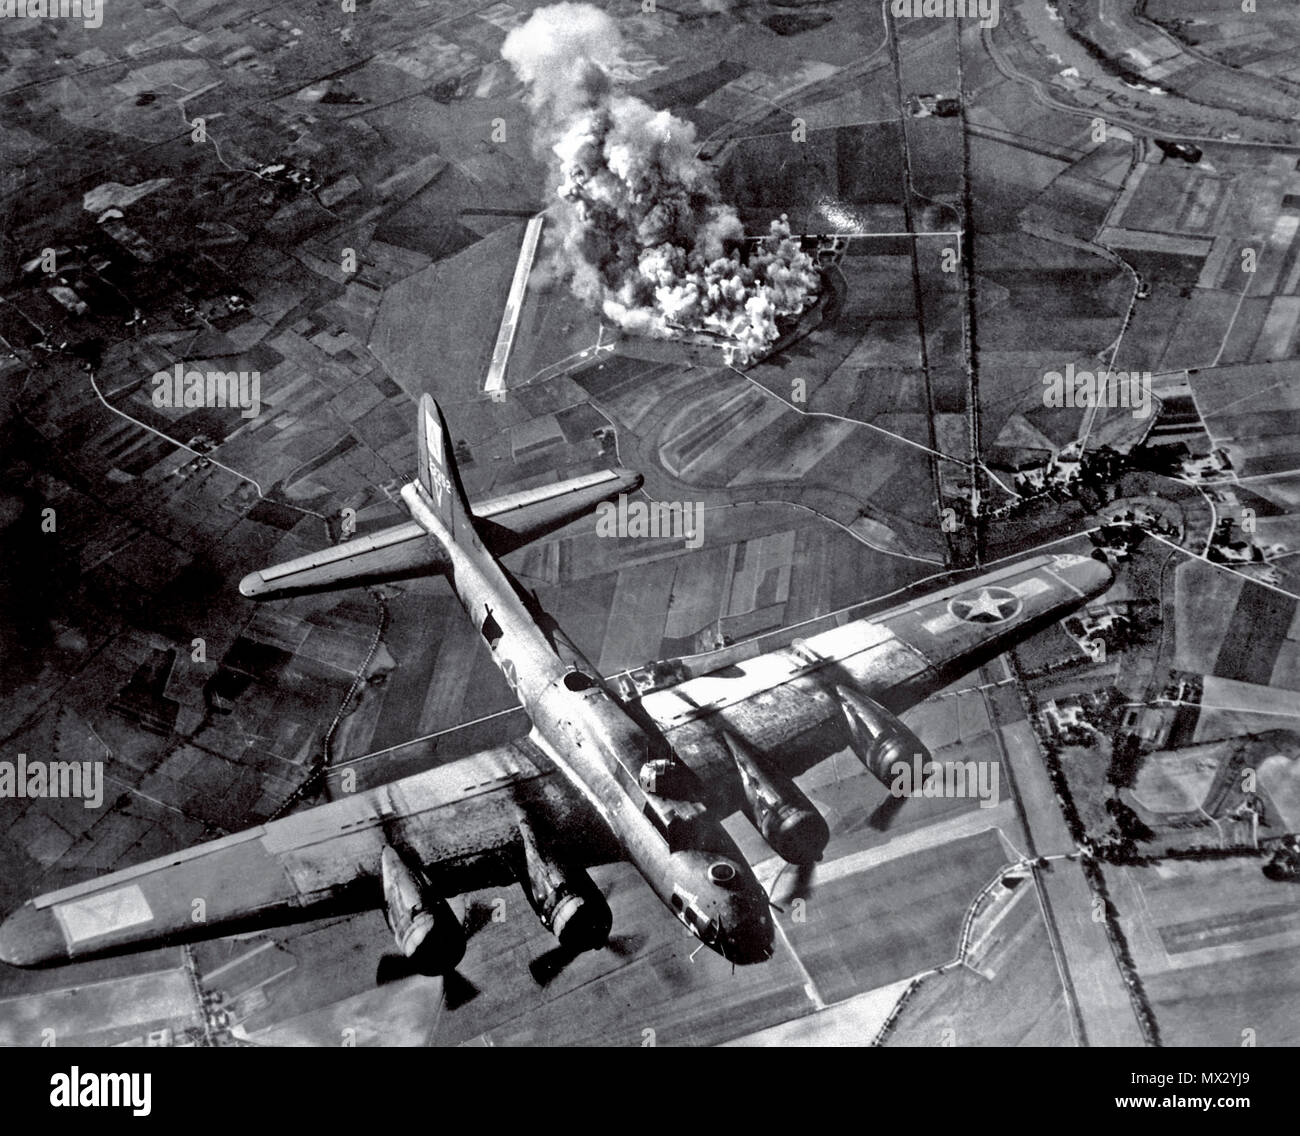 BOMBING B-17 Germany WW2  1940's Bombing Raid by a B-17 Flying Fortress of the American 8th Air Force on a Focke Wulf aircraft manufacturing plant at Marienburg Germany 1943. This notable World War II raid was a total success obliterating the plant completely with pinpoint bombing - Stock Image